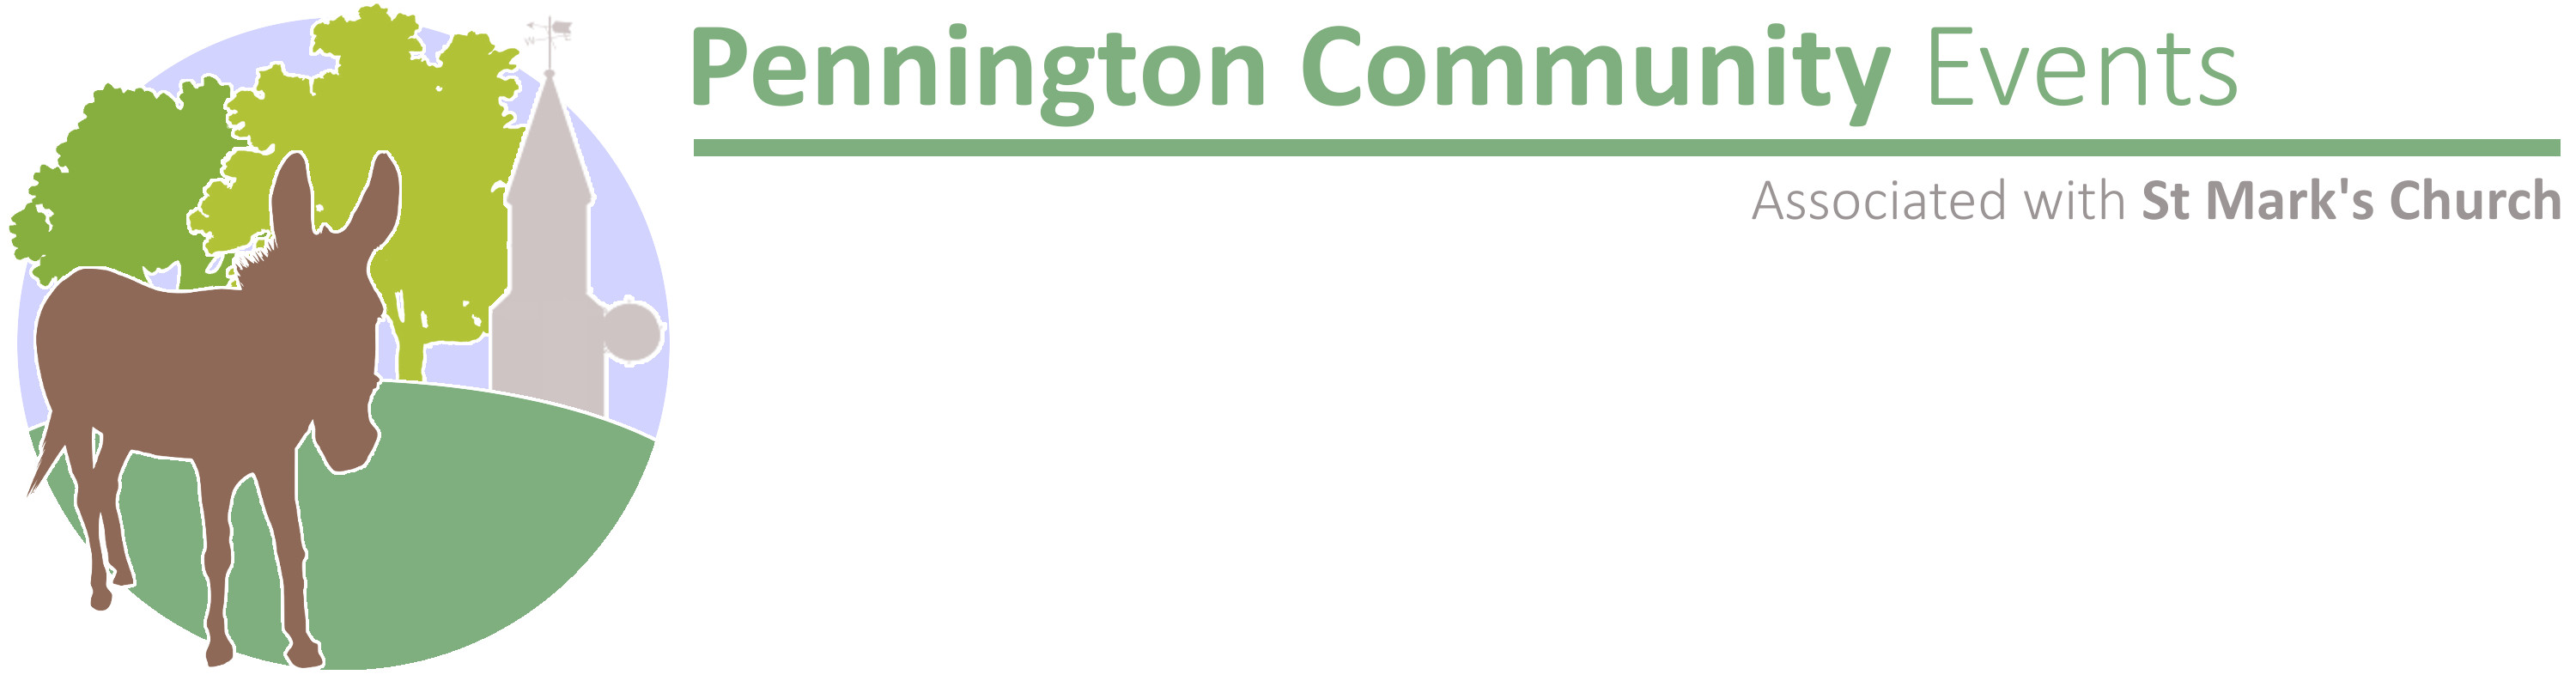 Pennington Community Events